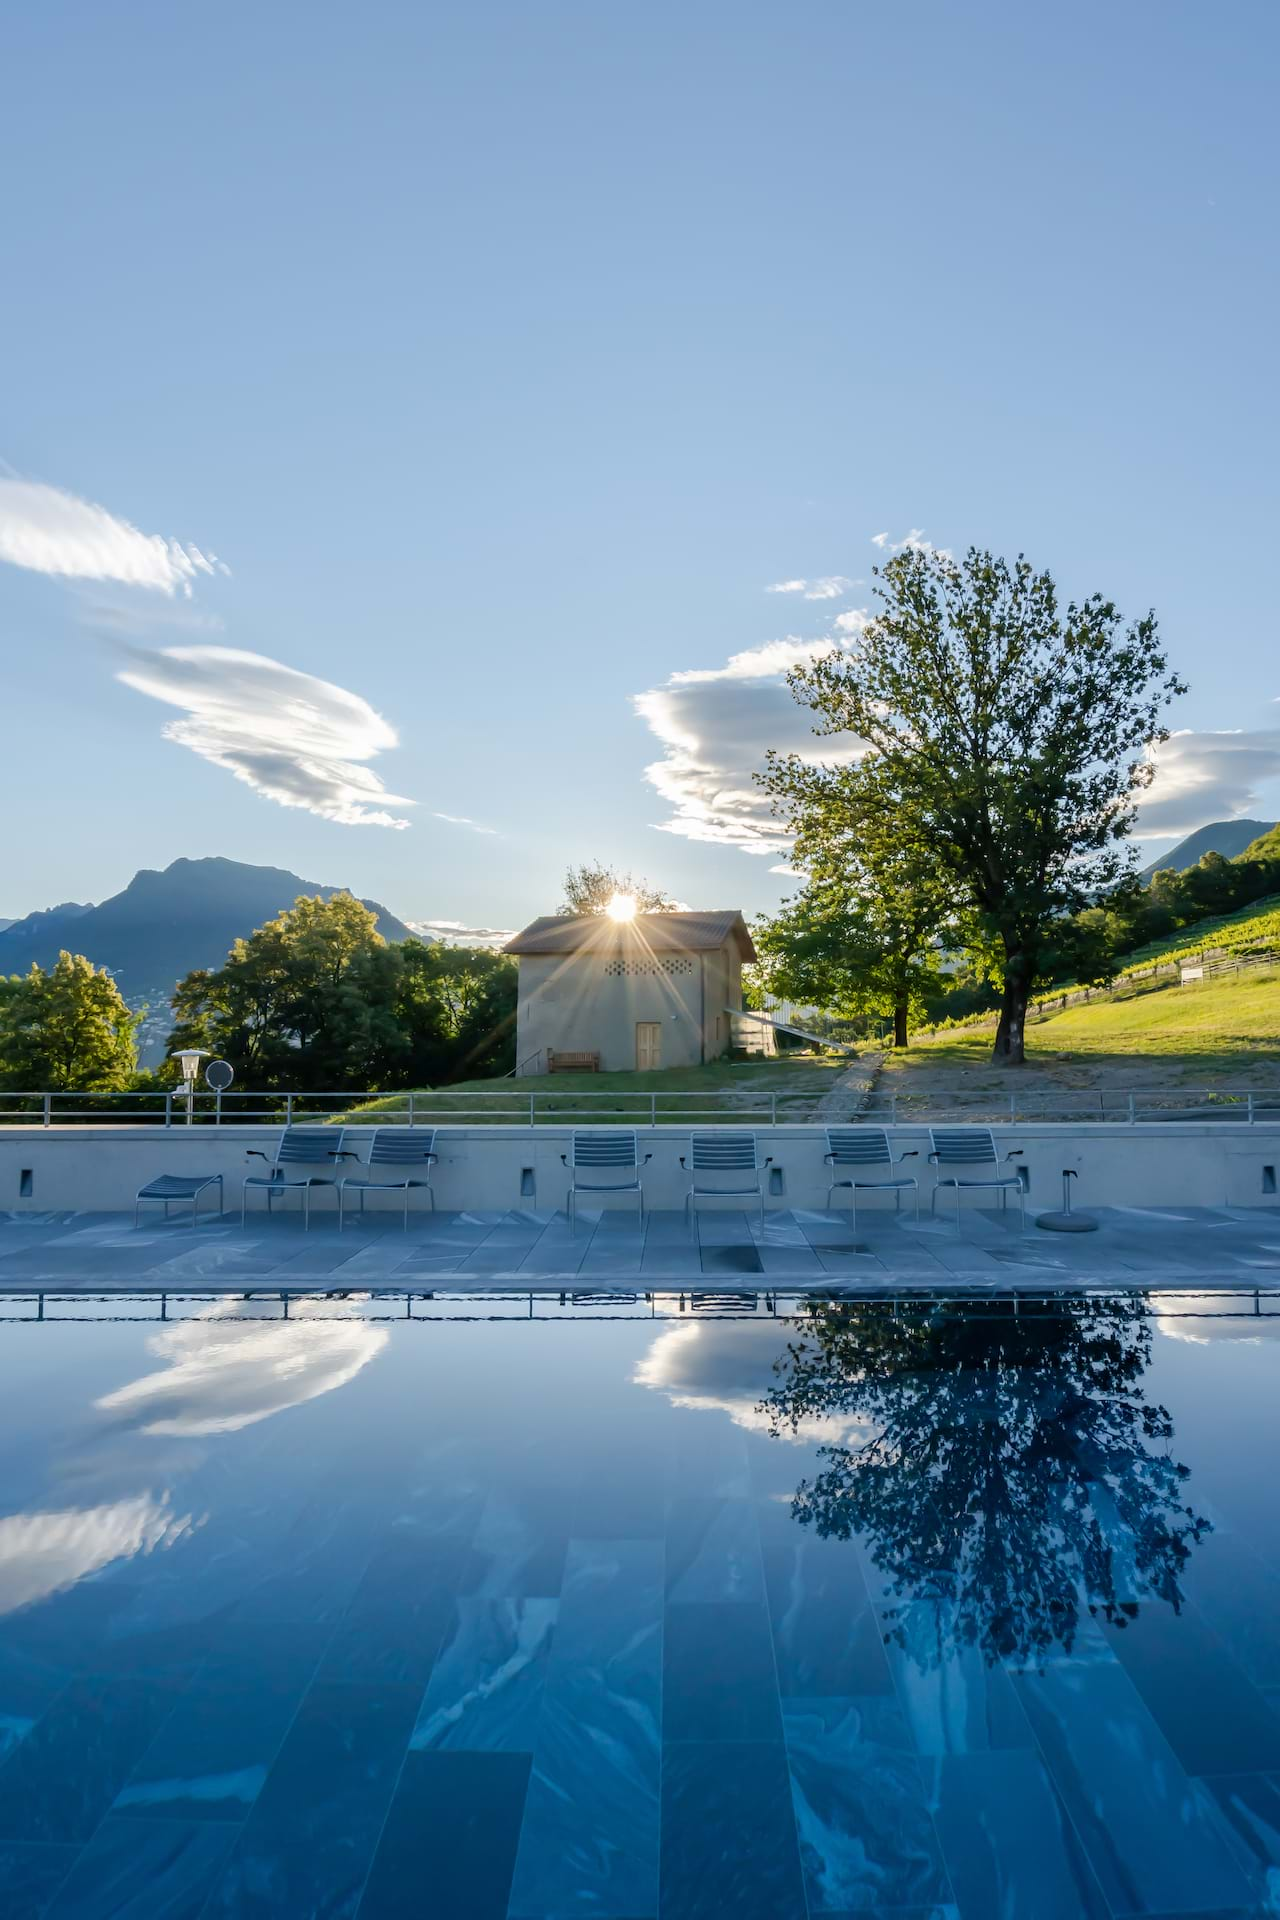 Swimmingpool_Bigatt_Hotel_and_Restaurant_Lugano_10.jpg